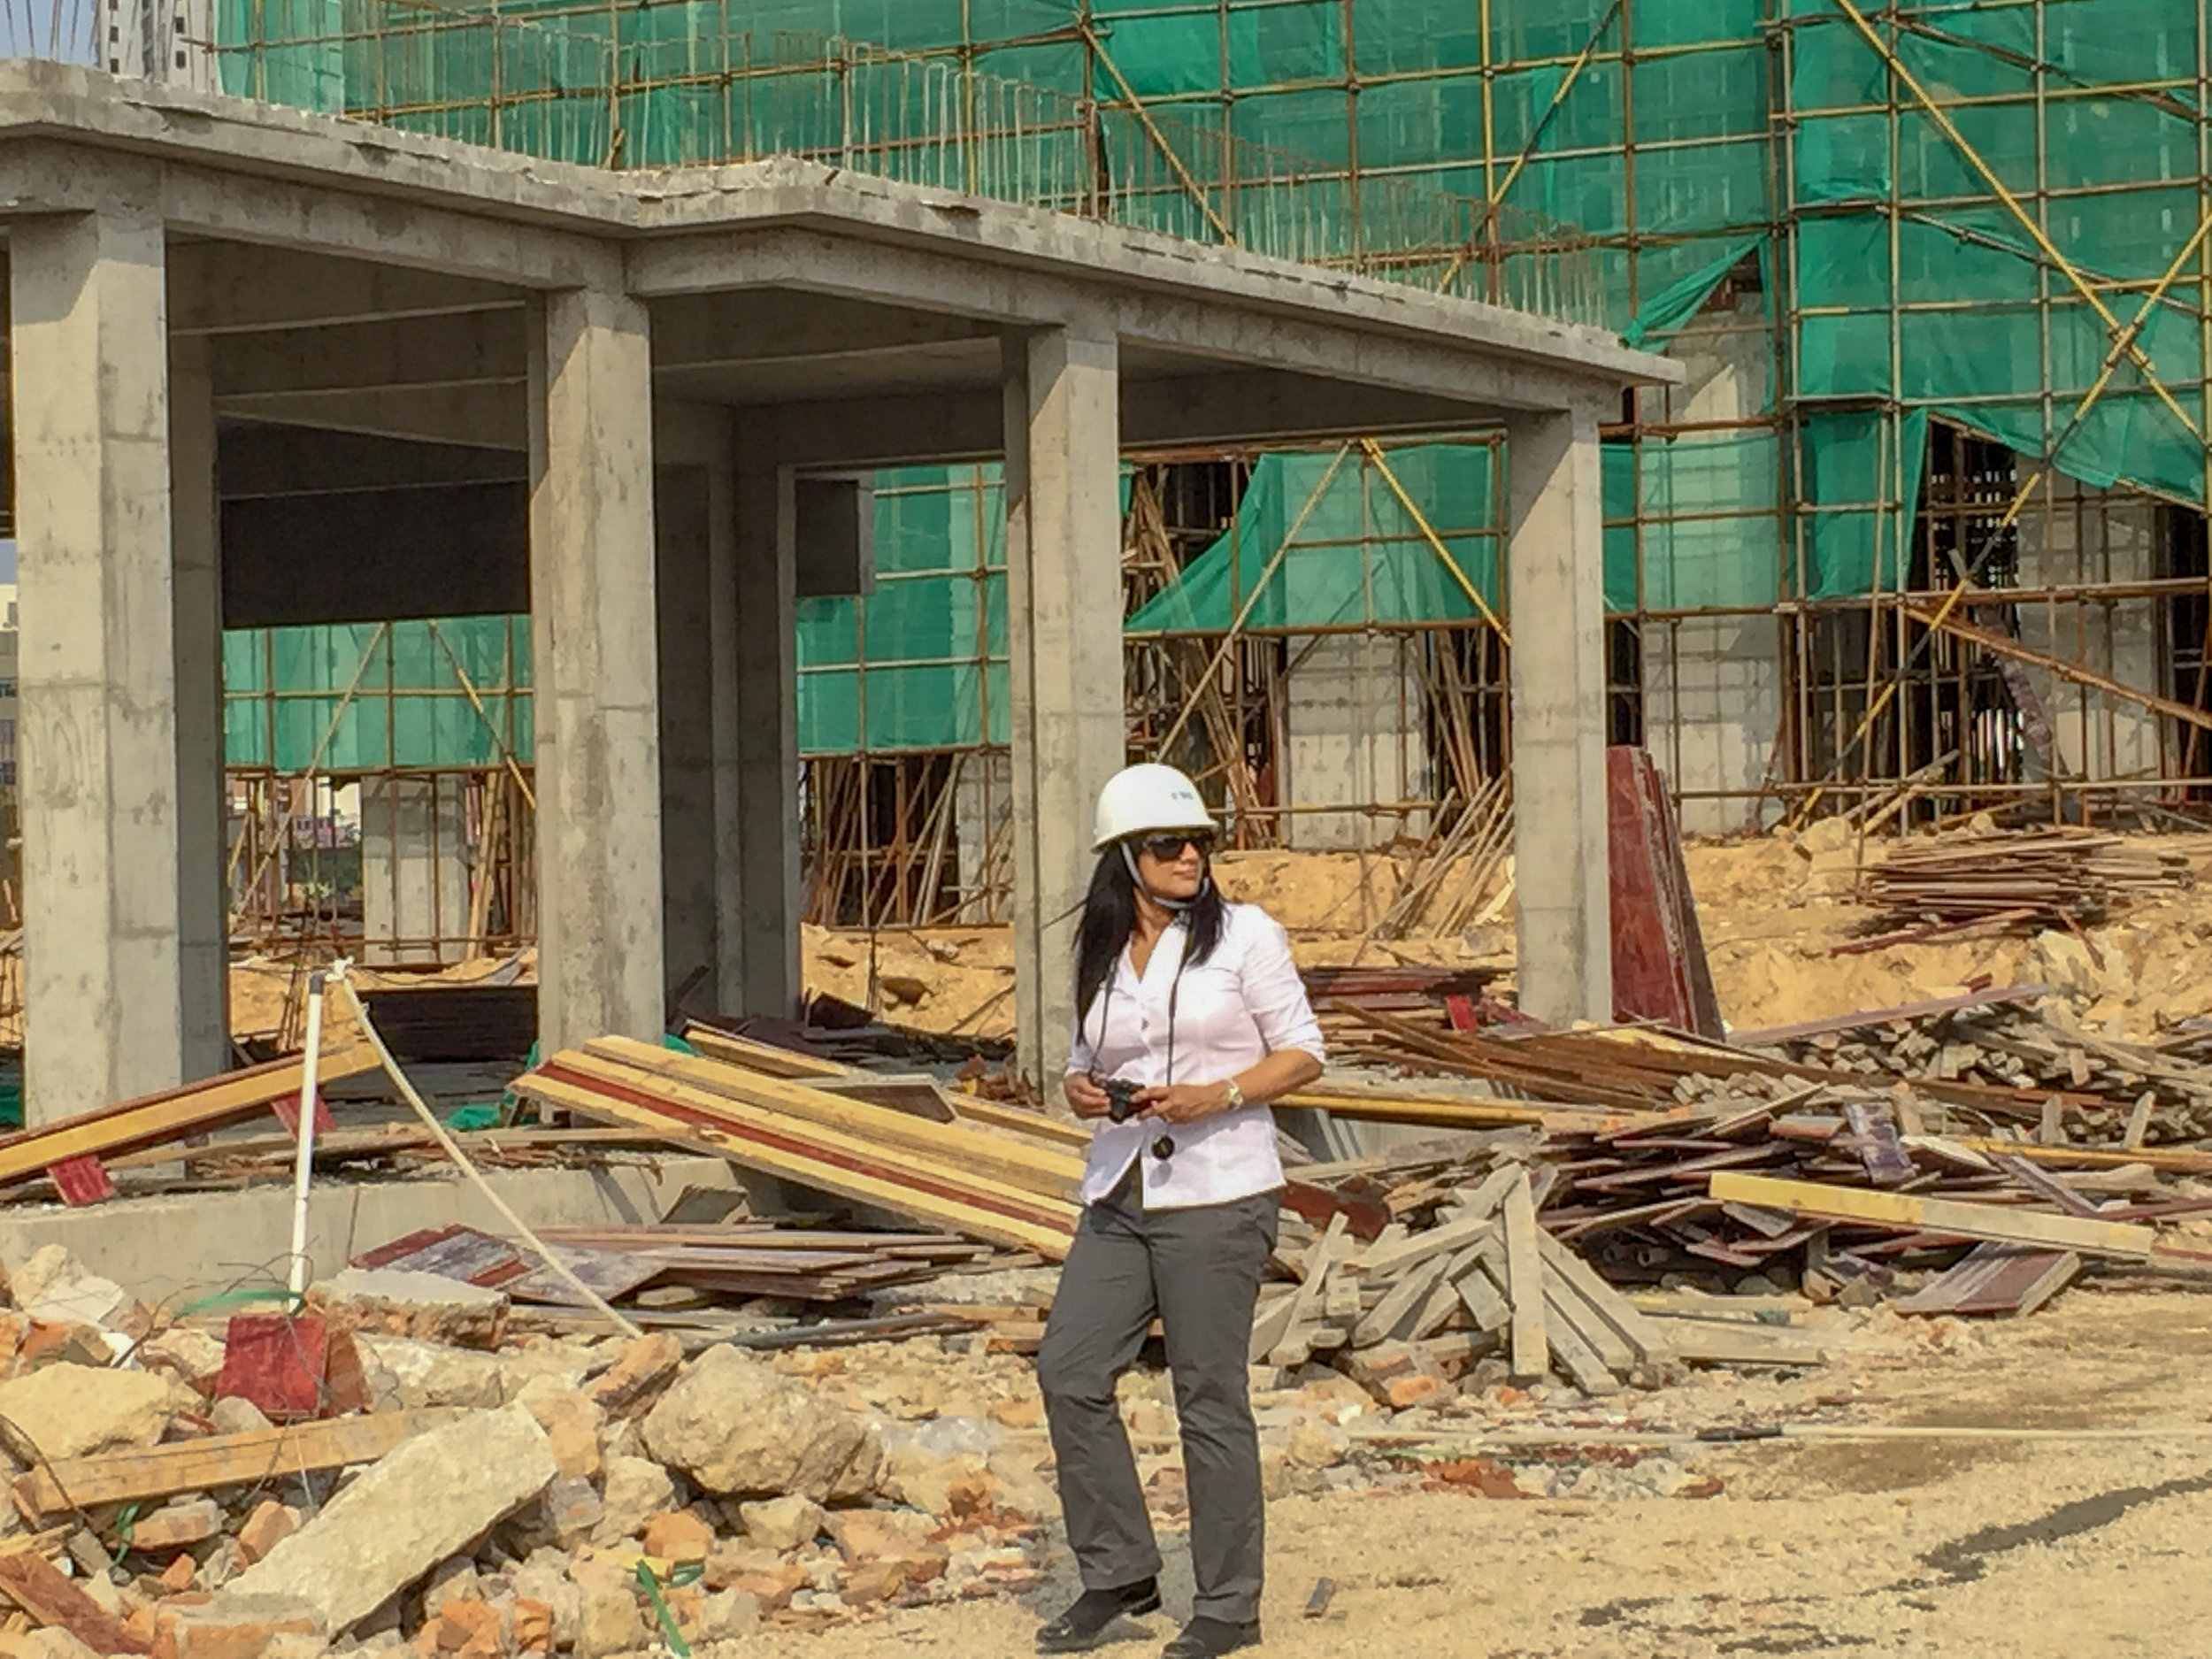 Walking a project site during construction in China.